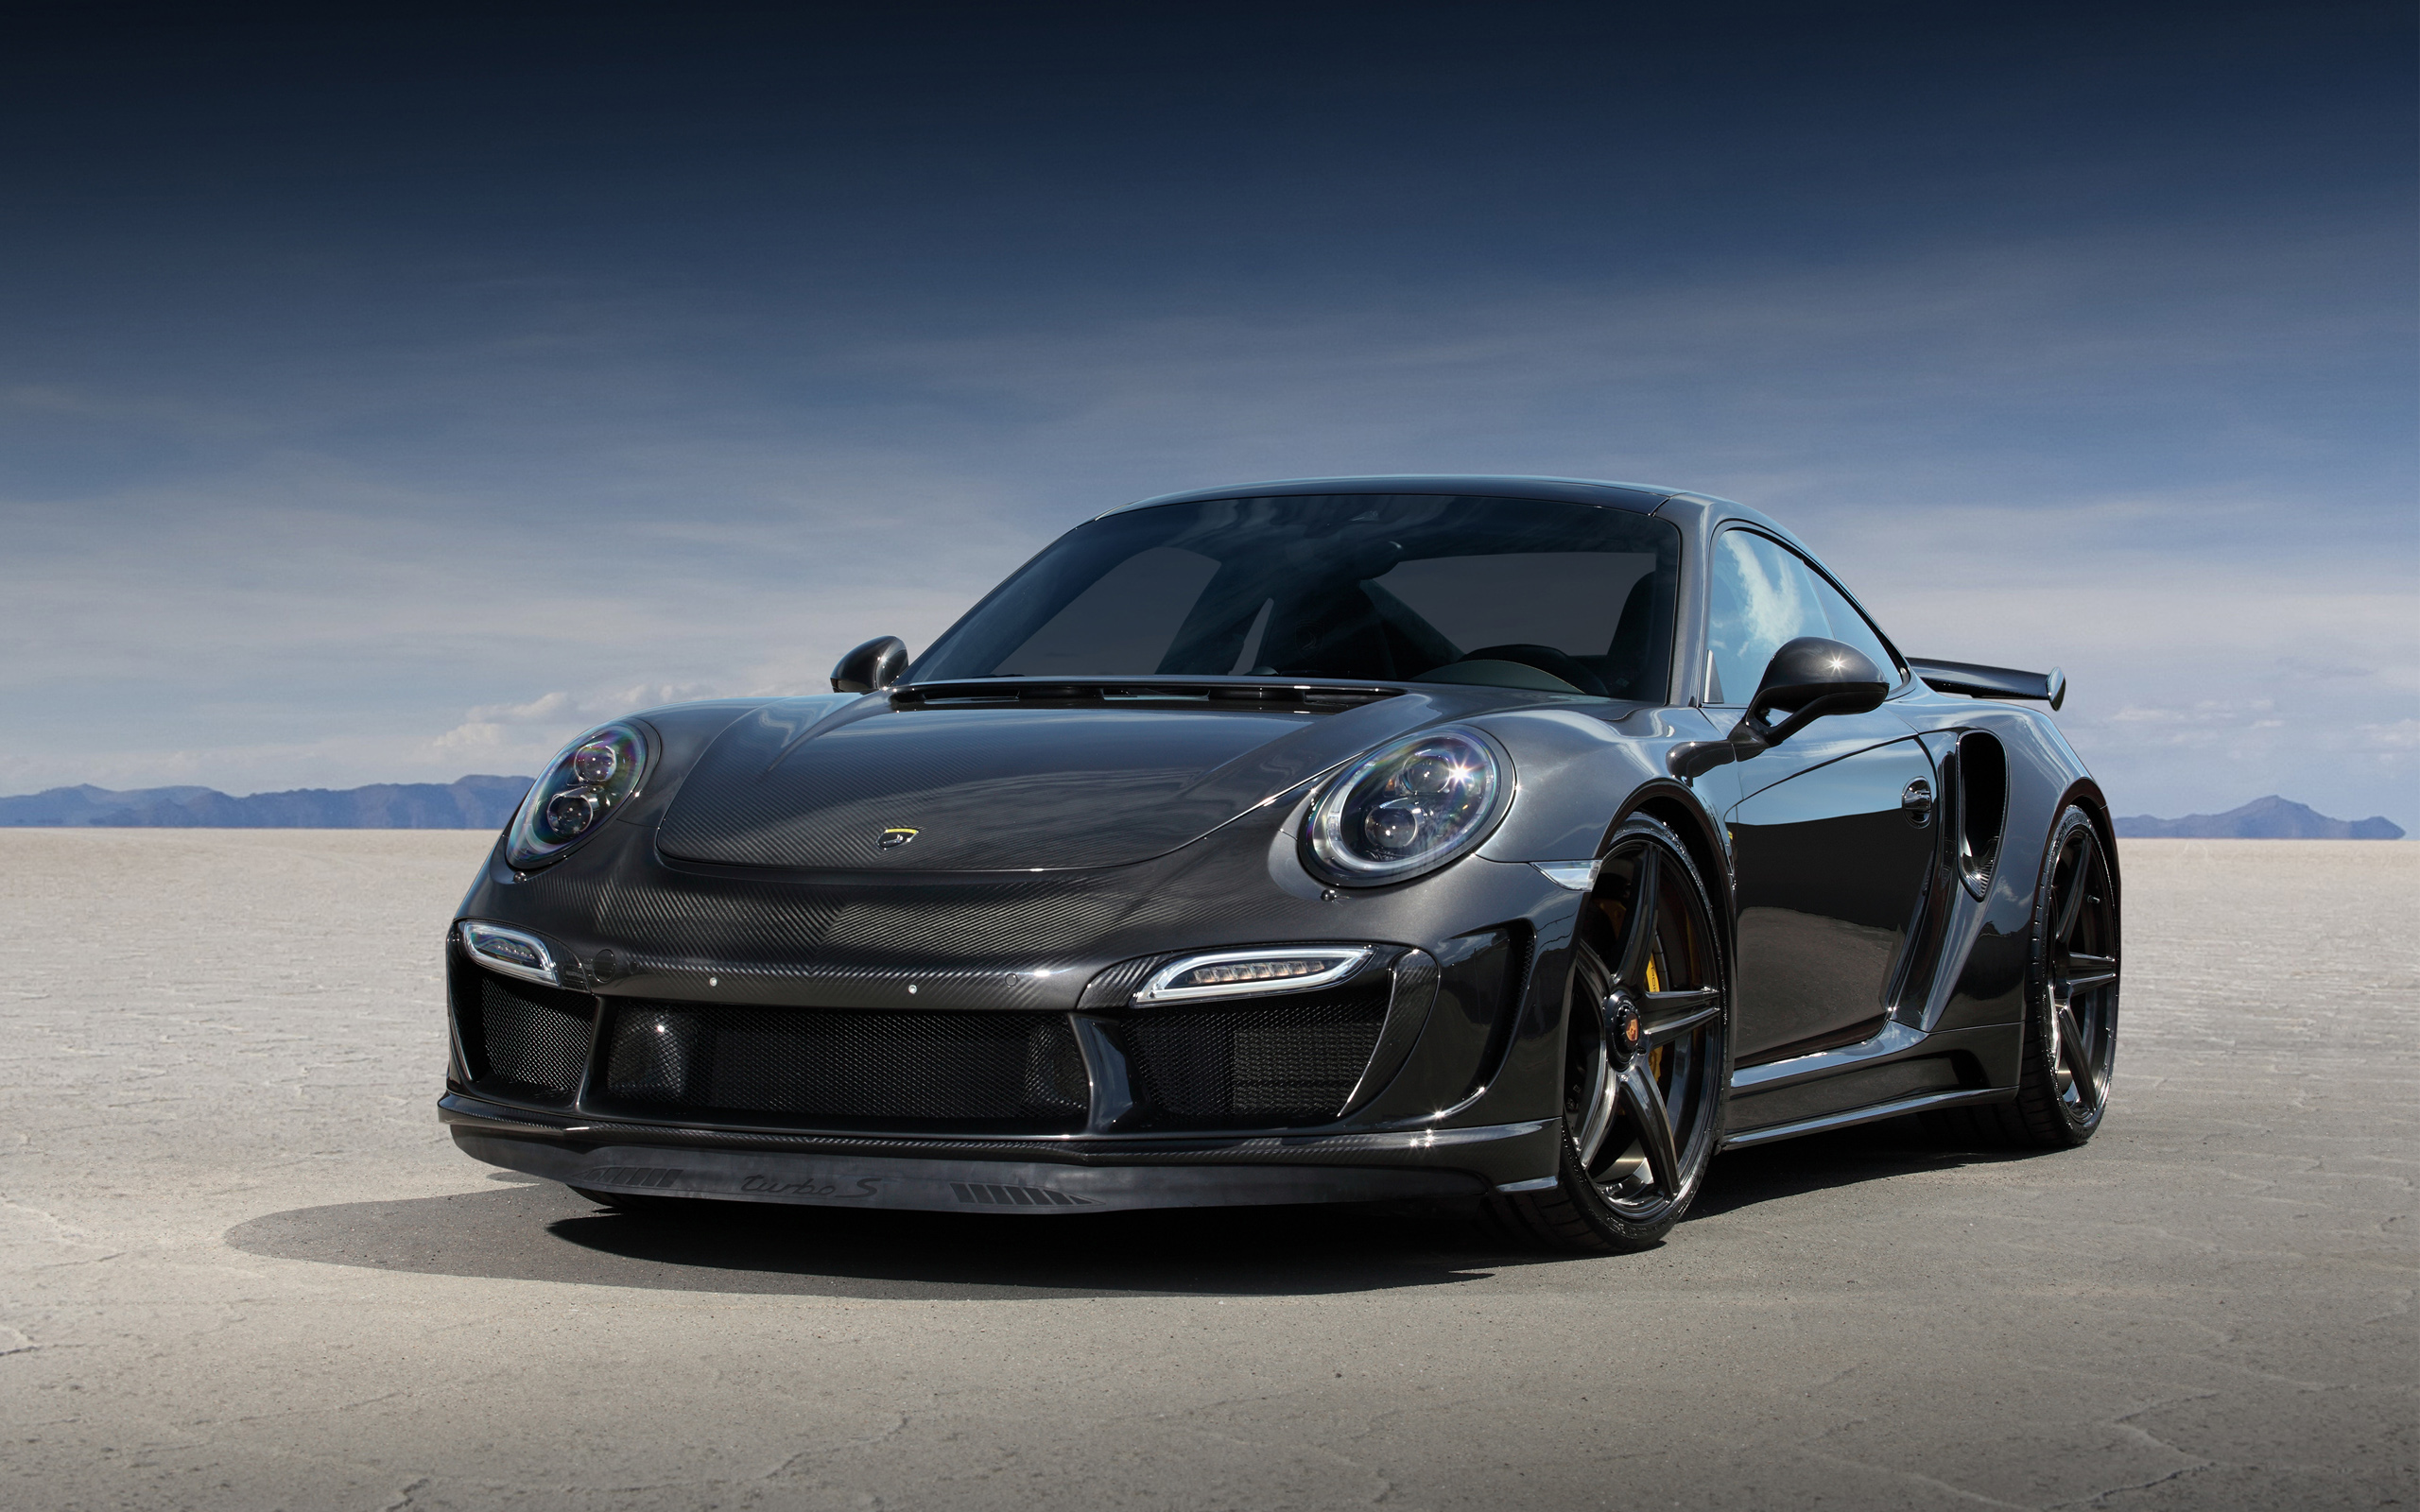 Porsche 911 Turbo Wallpapers and Background Images   stmednet 2560x1600